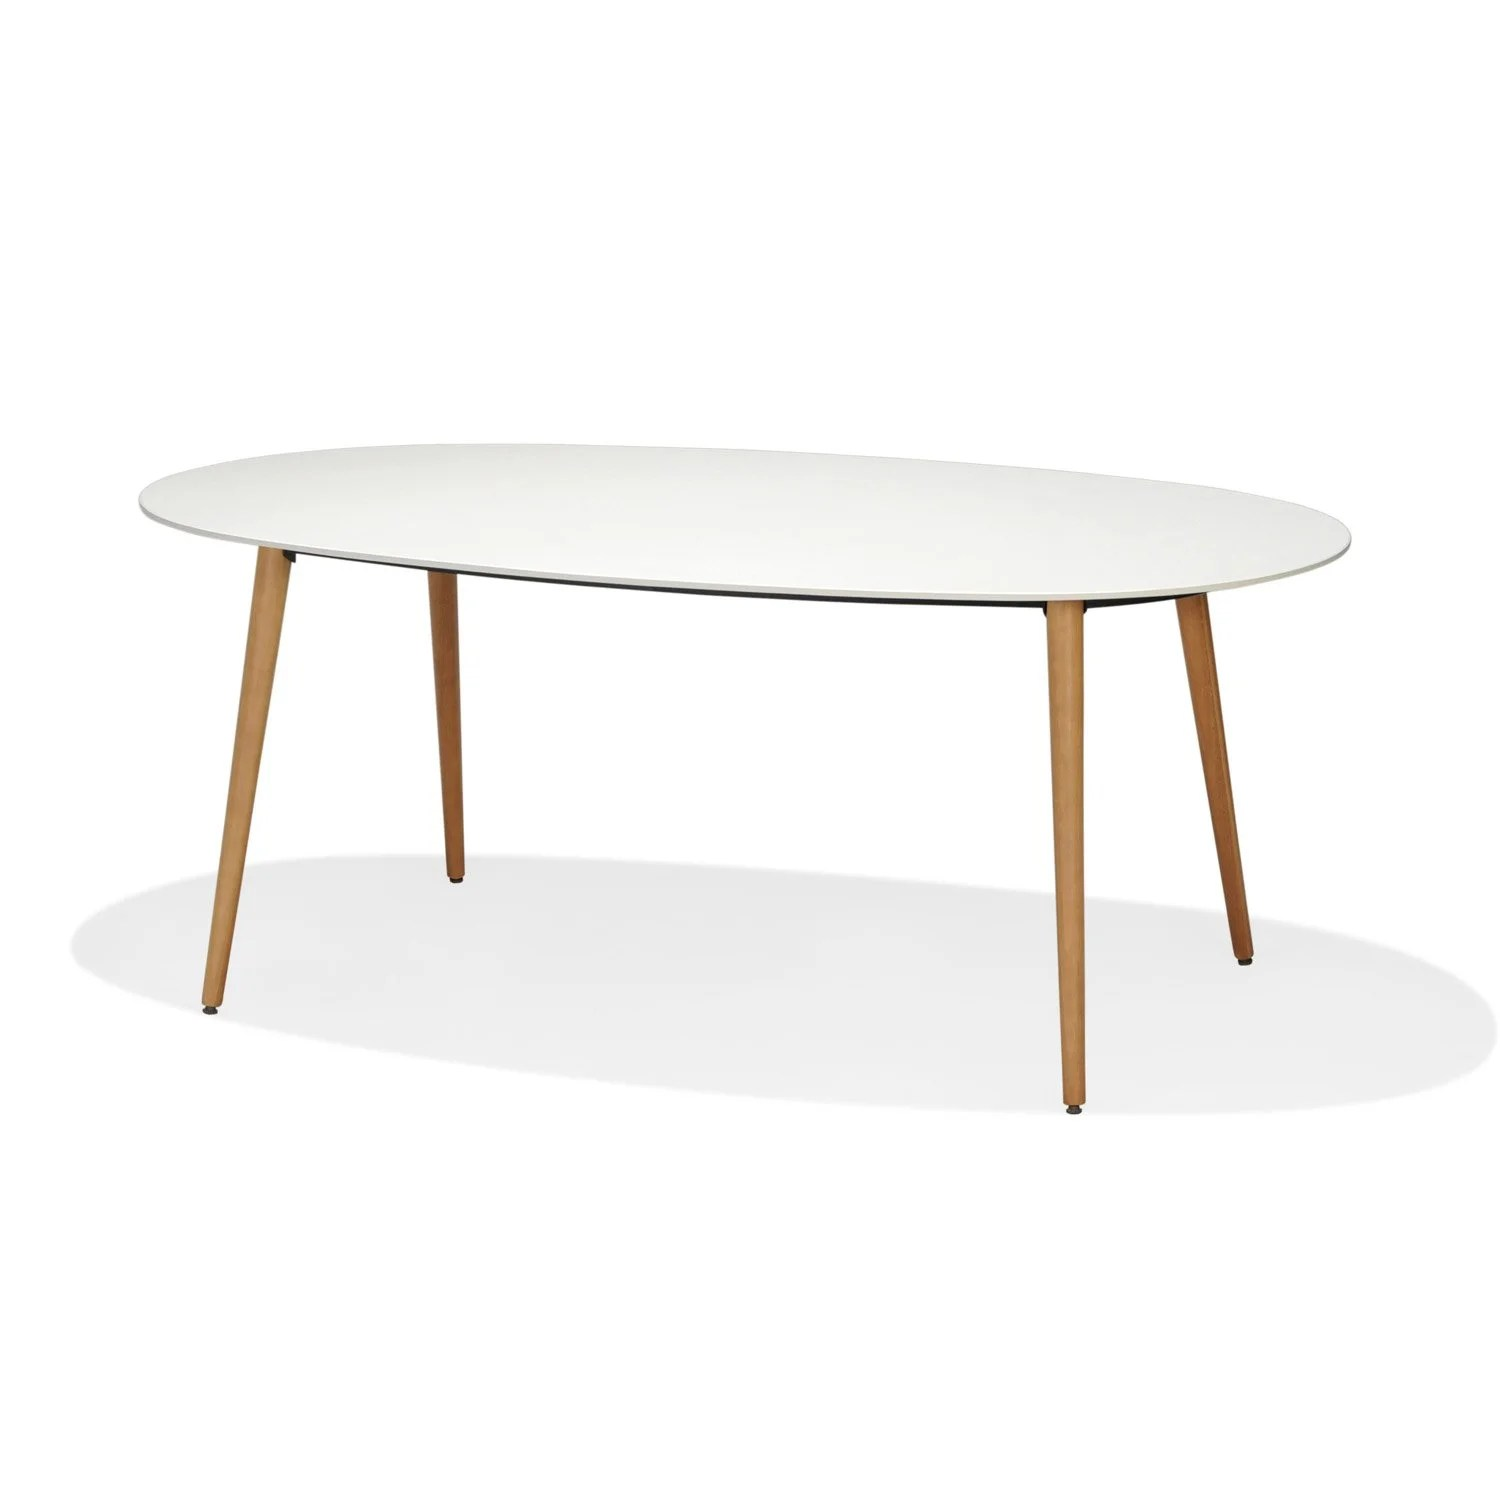 Table Ovale Beautiful Table De Cuisine Ovale With Table De Cuisine Ovale